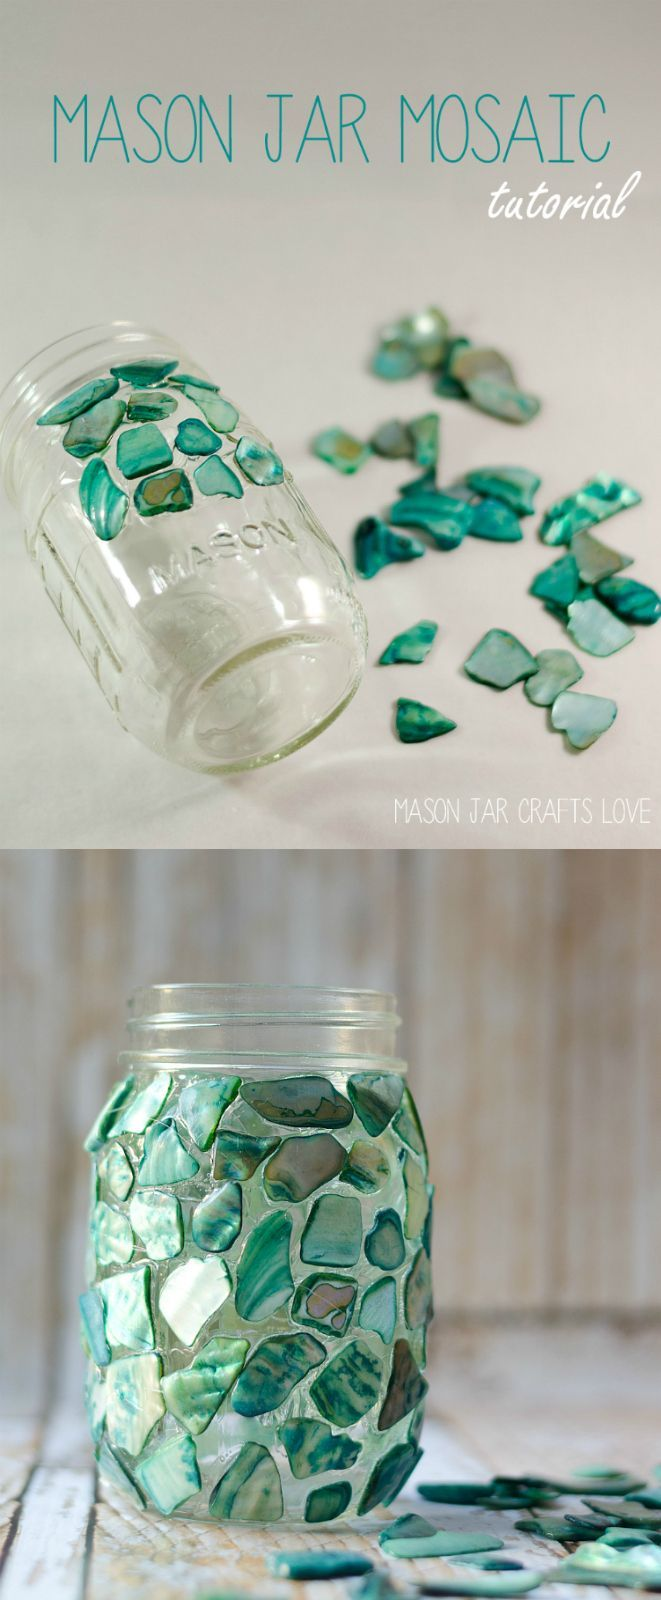 61 best HOME: Mason Jar Ideas images on Pinterest | Bricolage, Mason ...